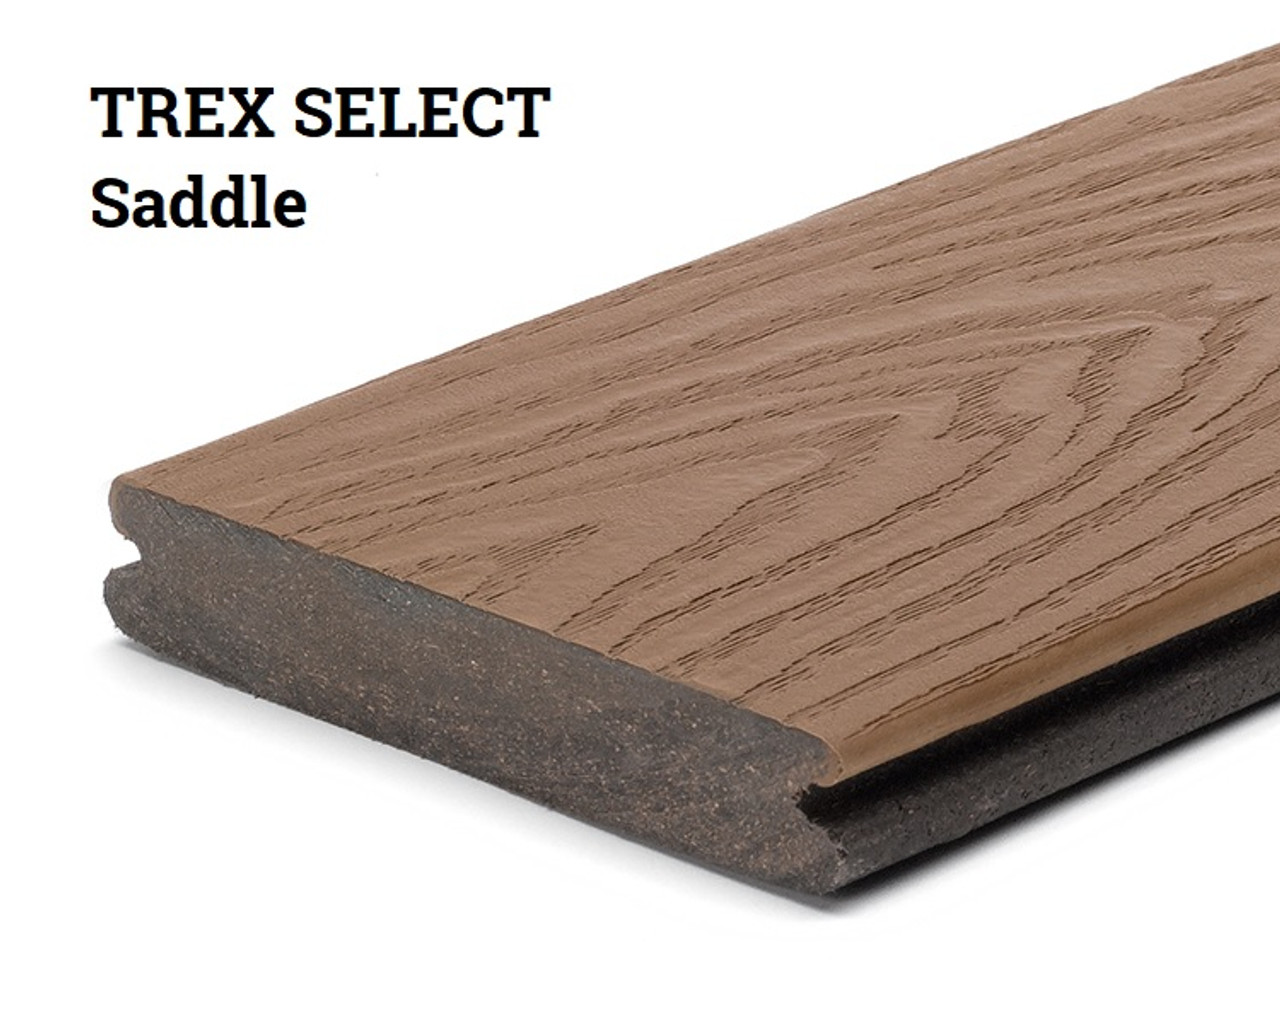 Trex Select Saddle Grooved Edge Decking